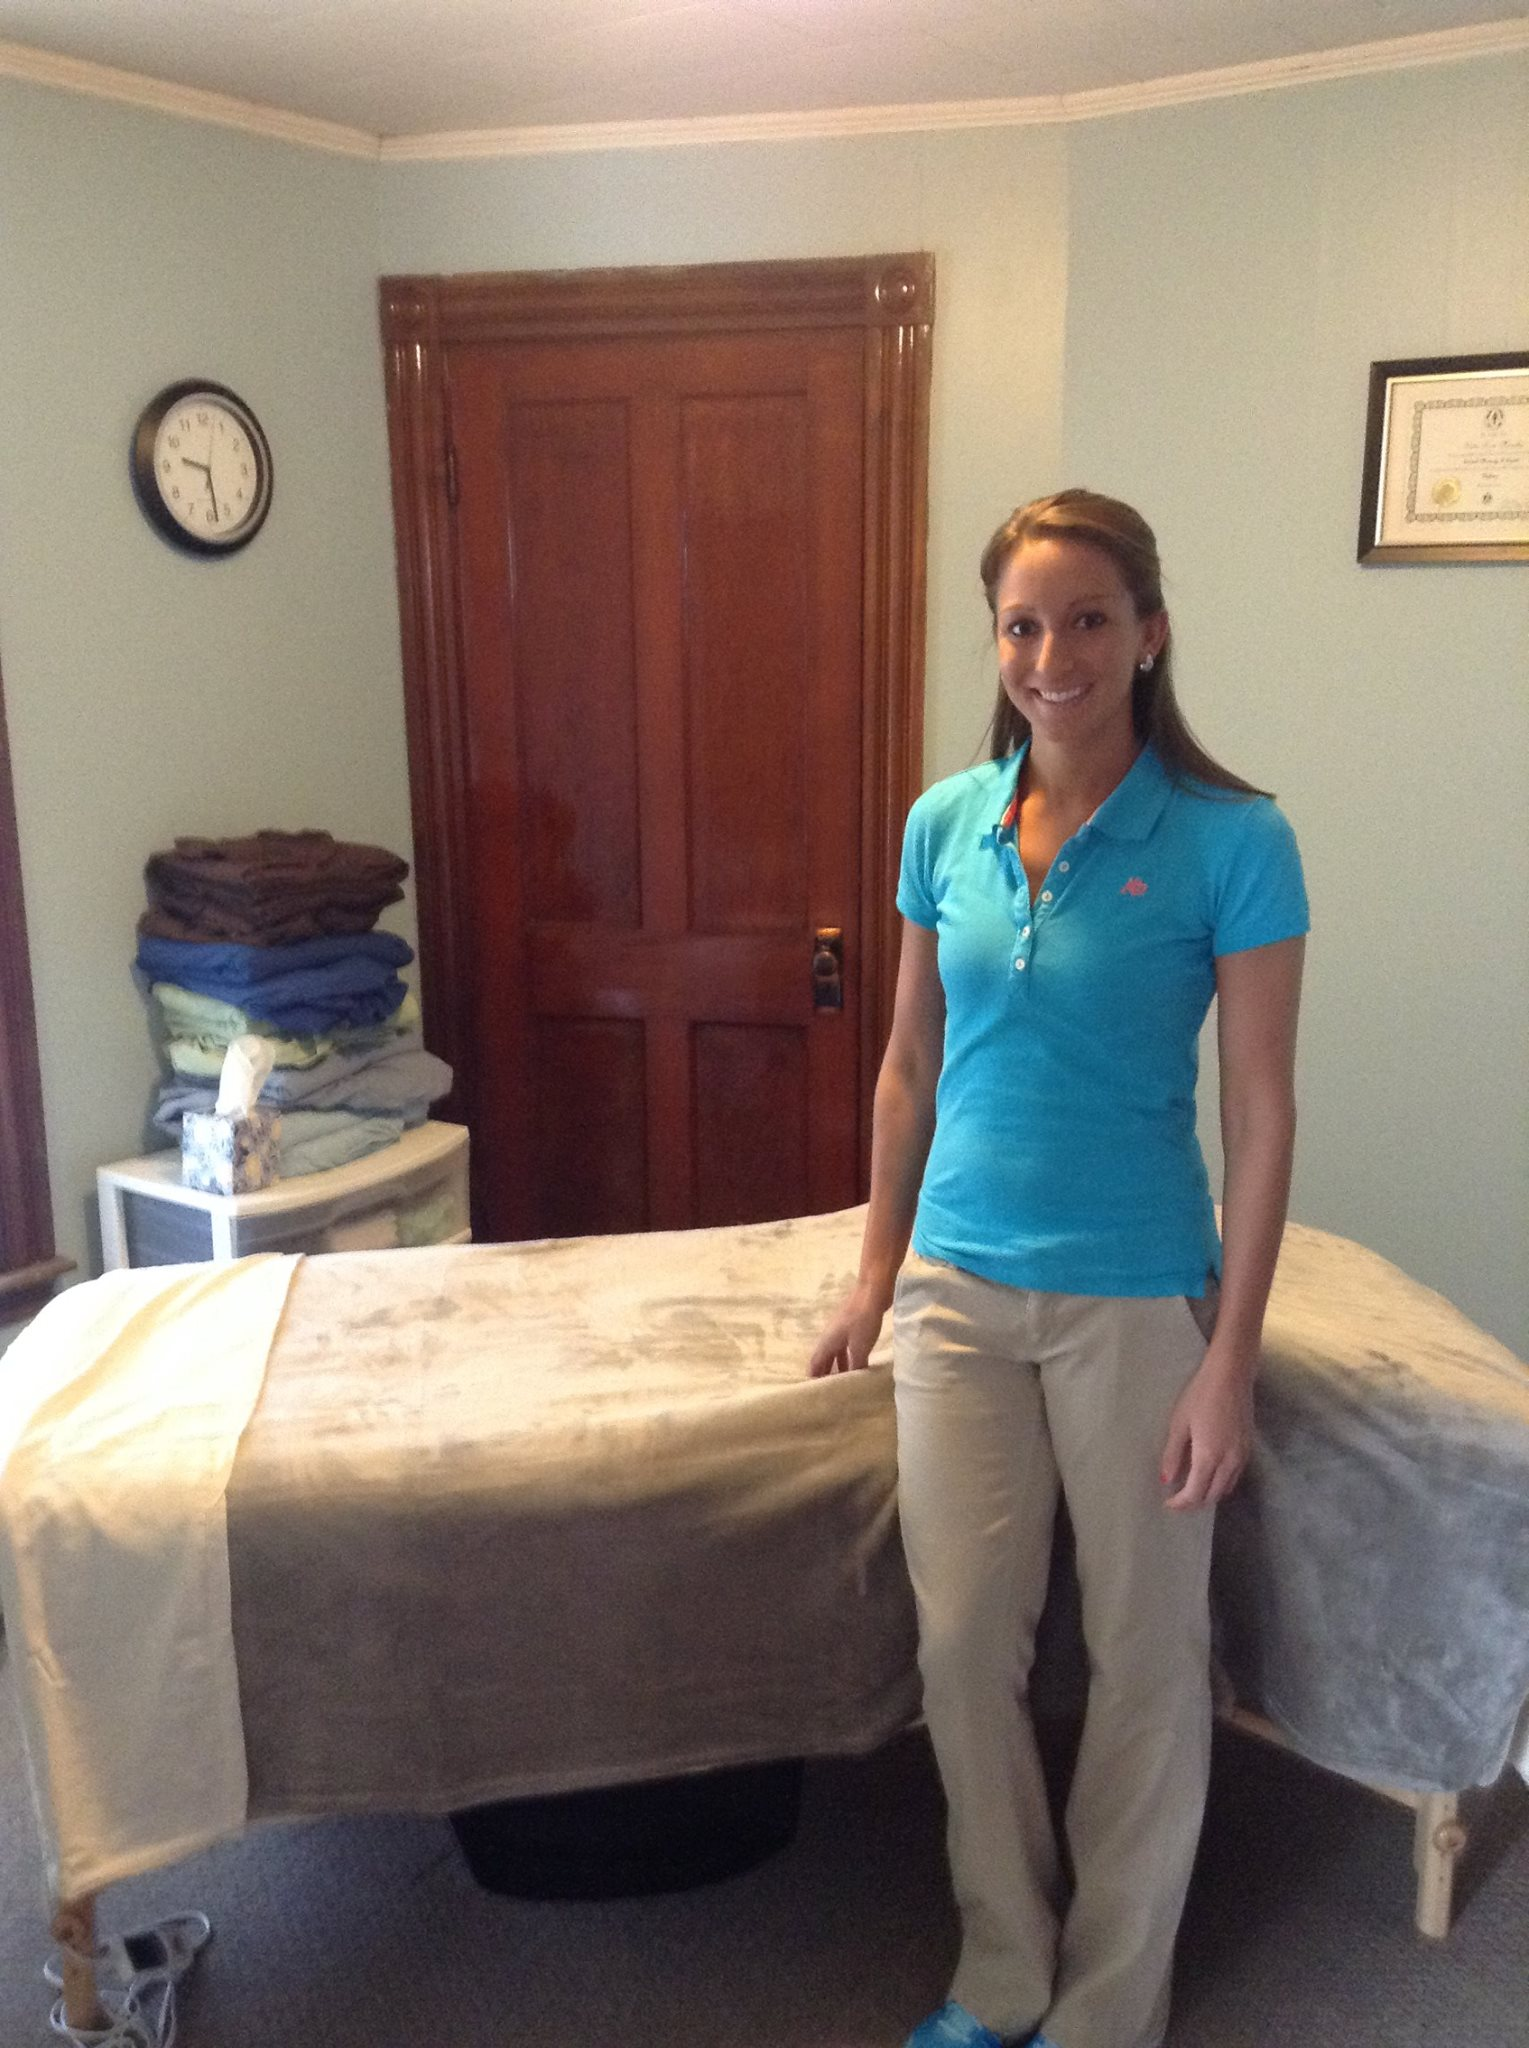 Katie Murphy, Massage Therapist, standing in her treatment room Brewer Maine 2014